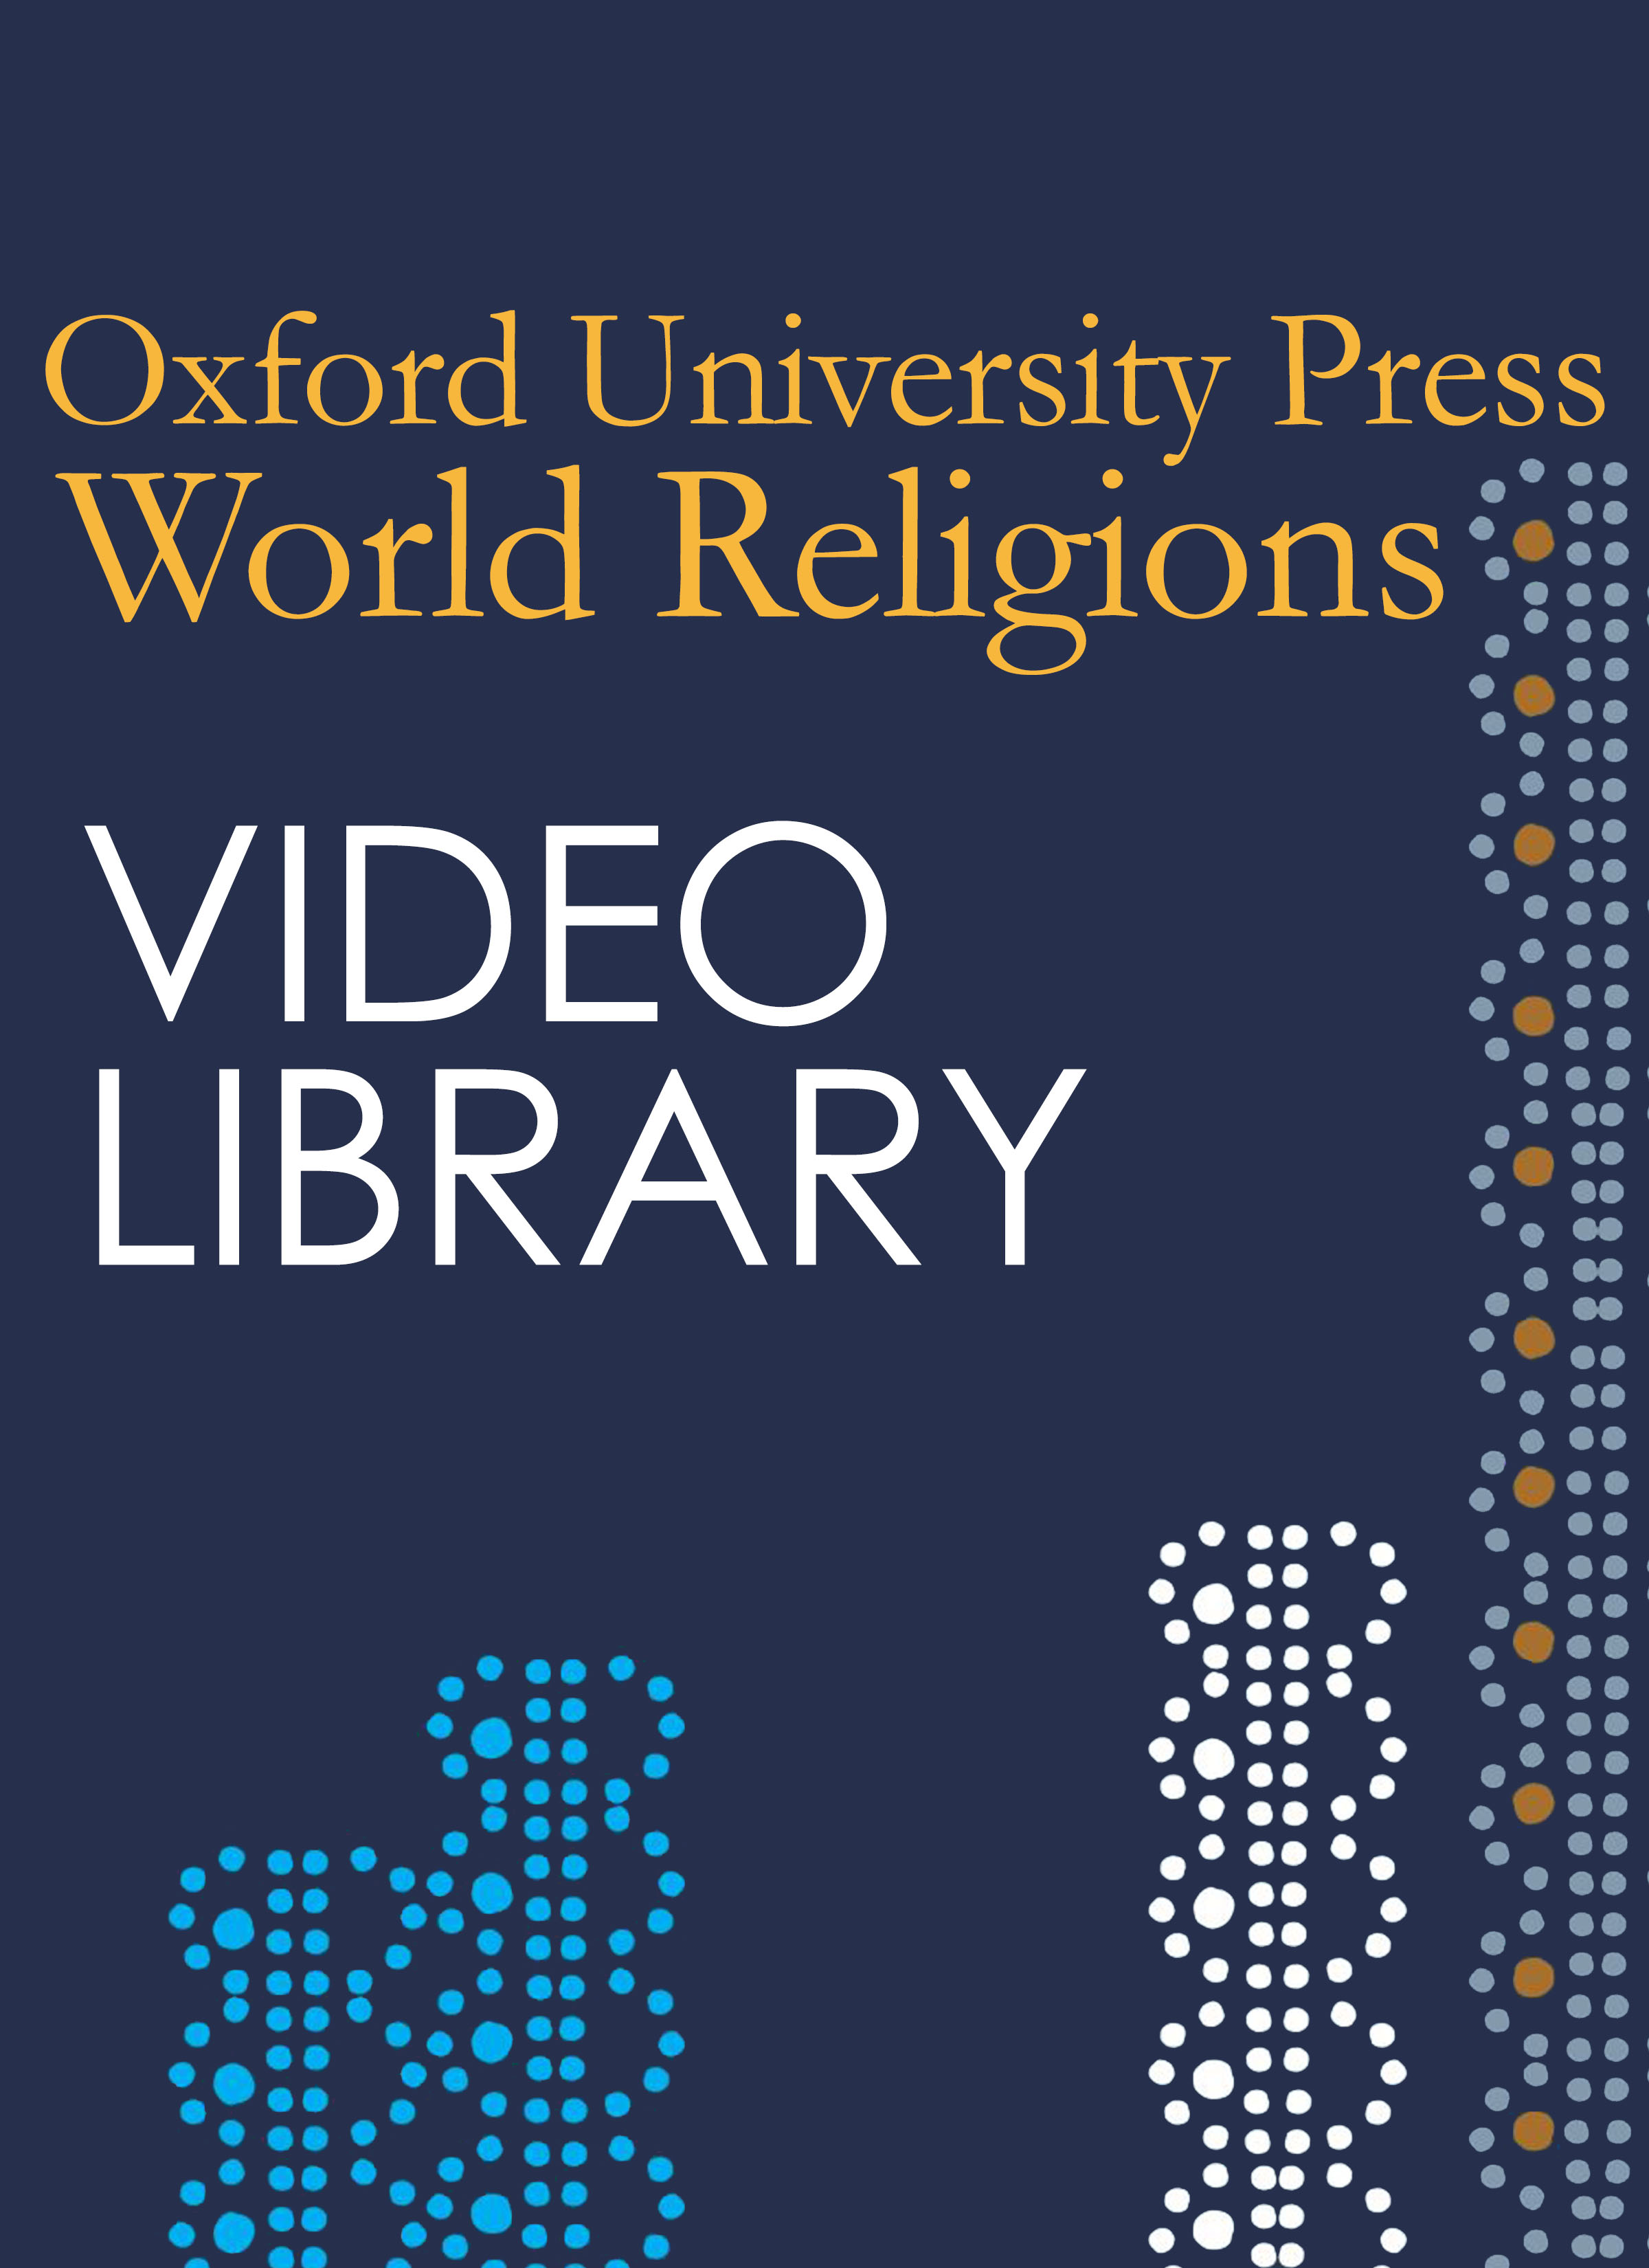 OUP World Religions Video Library